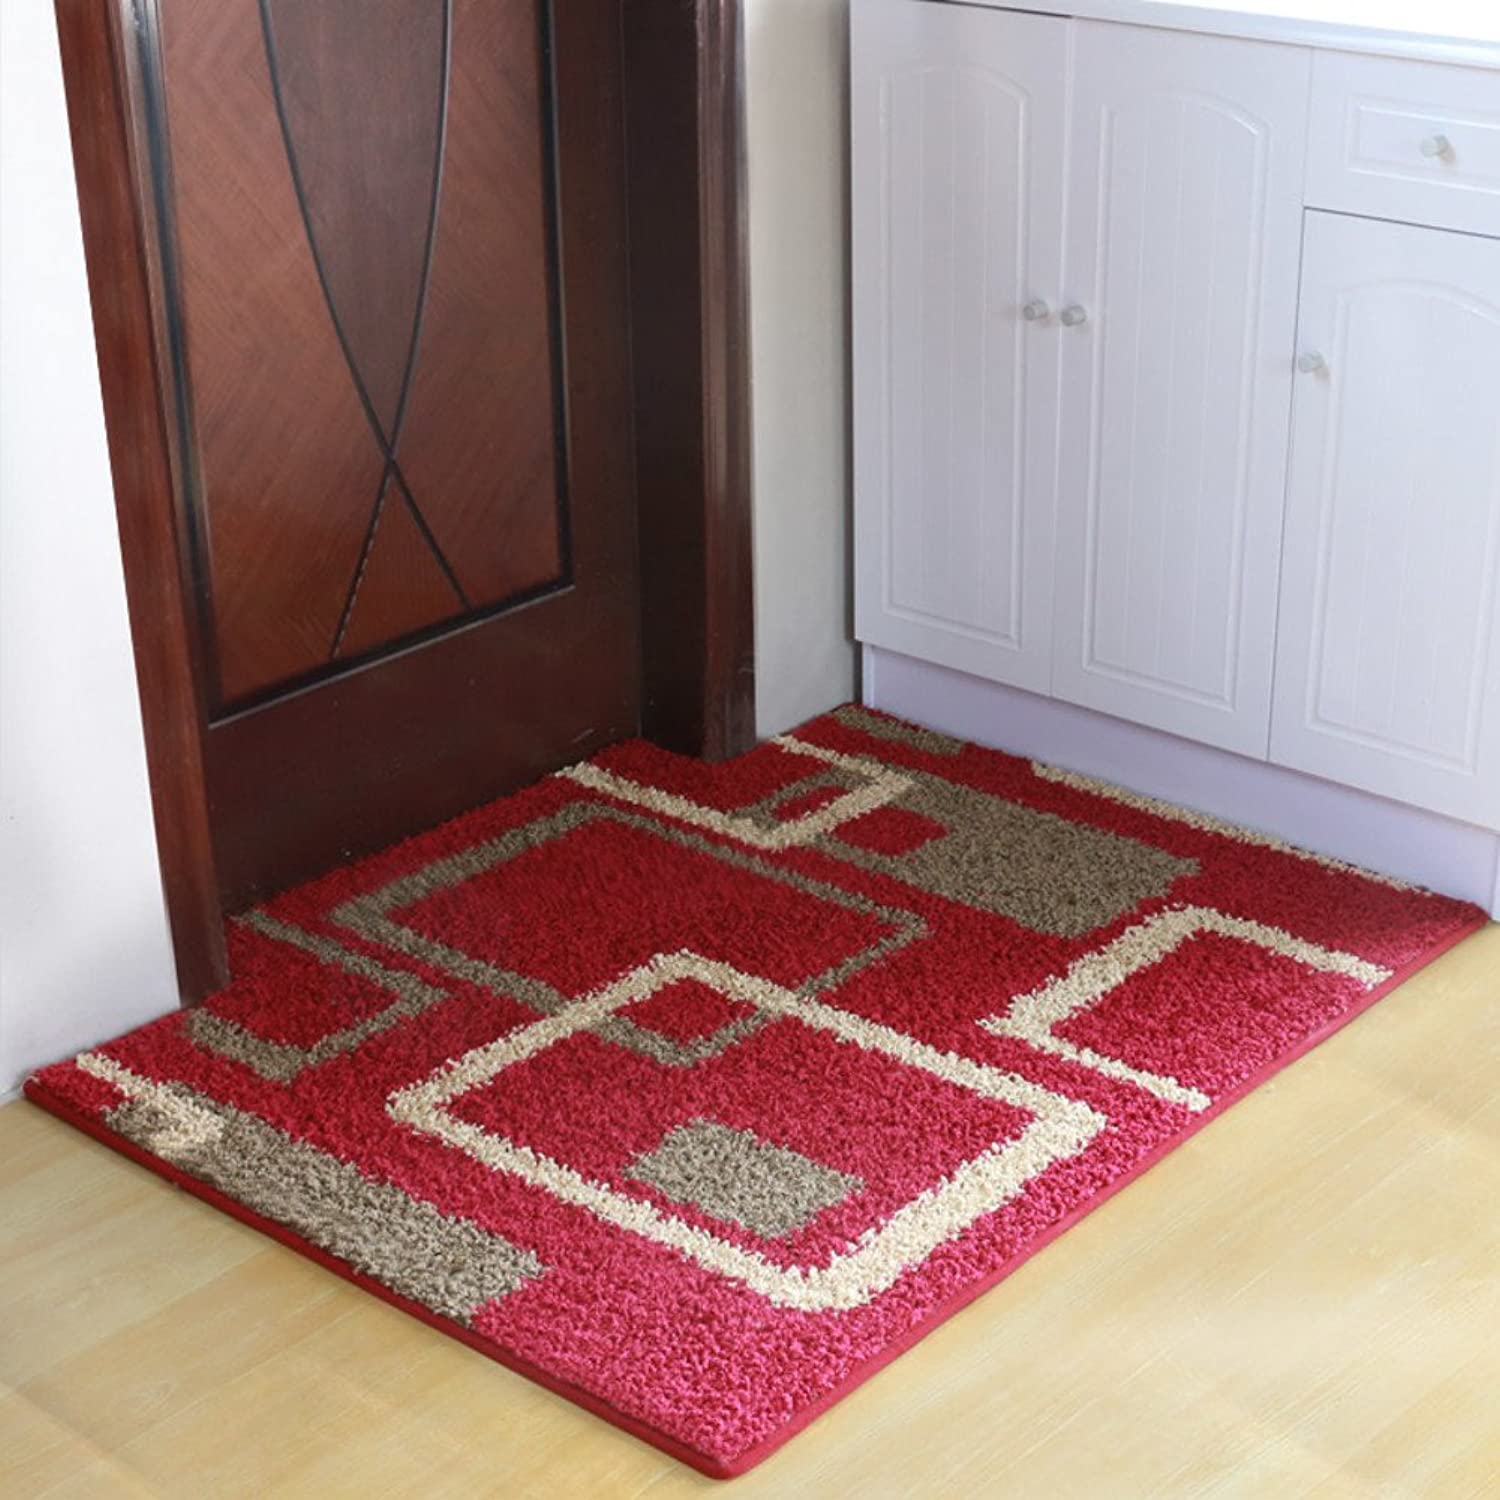 You Can Cut Household Door Mats No-Slipping Mat Living Room Hallway Bathroom Door Mat-B 120x160cm(47x63inch)